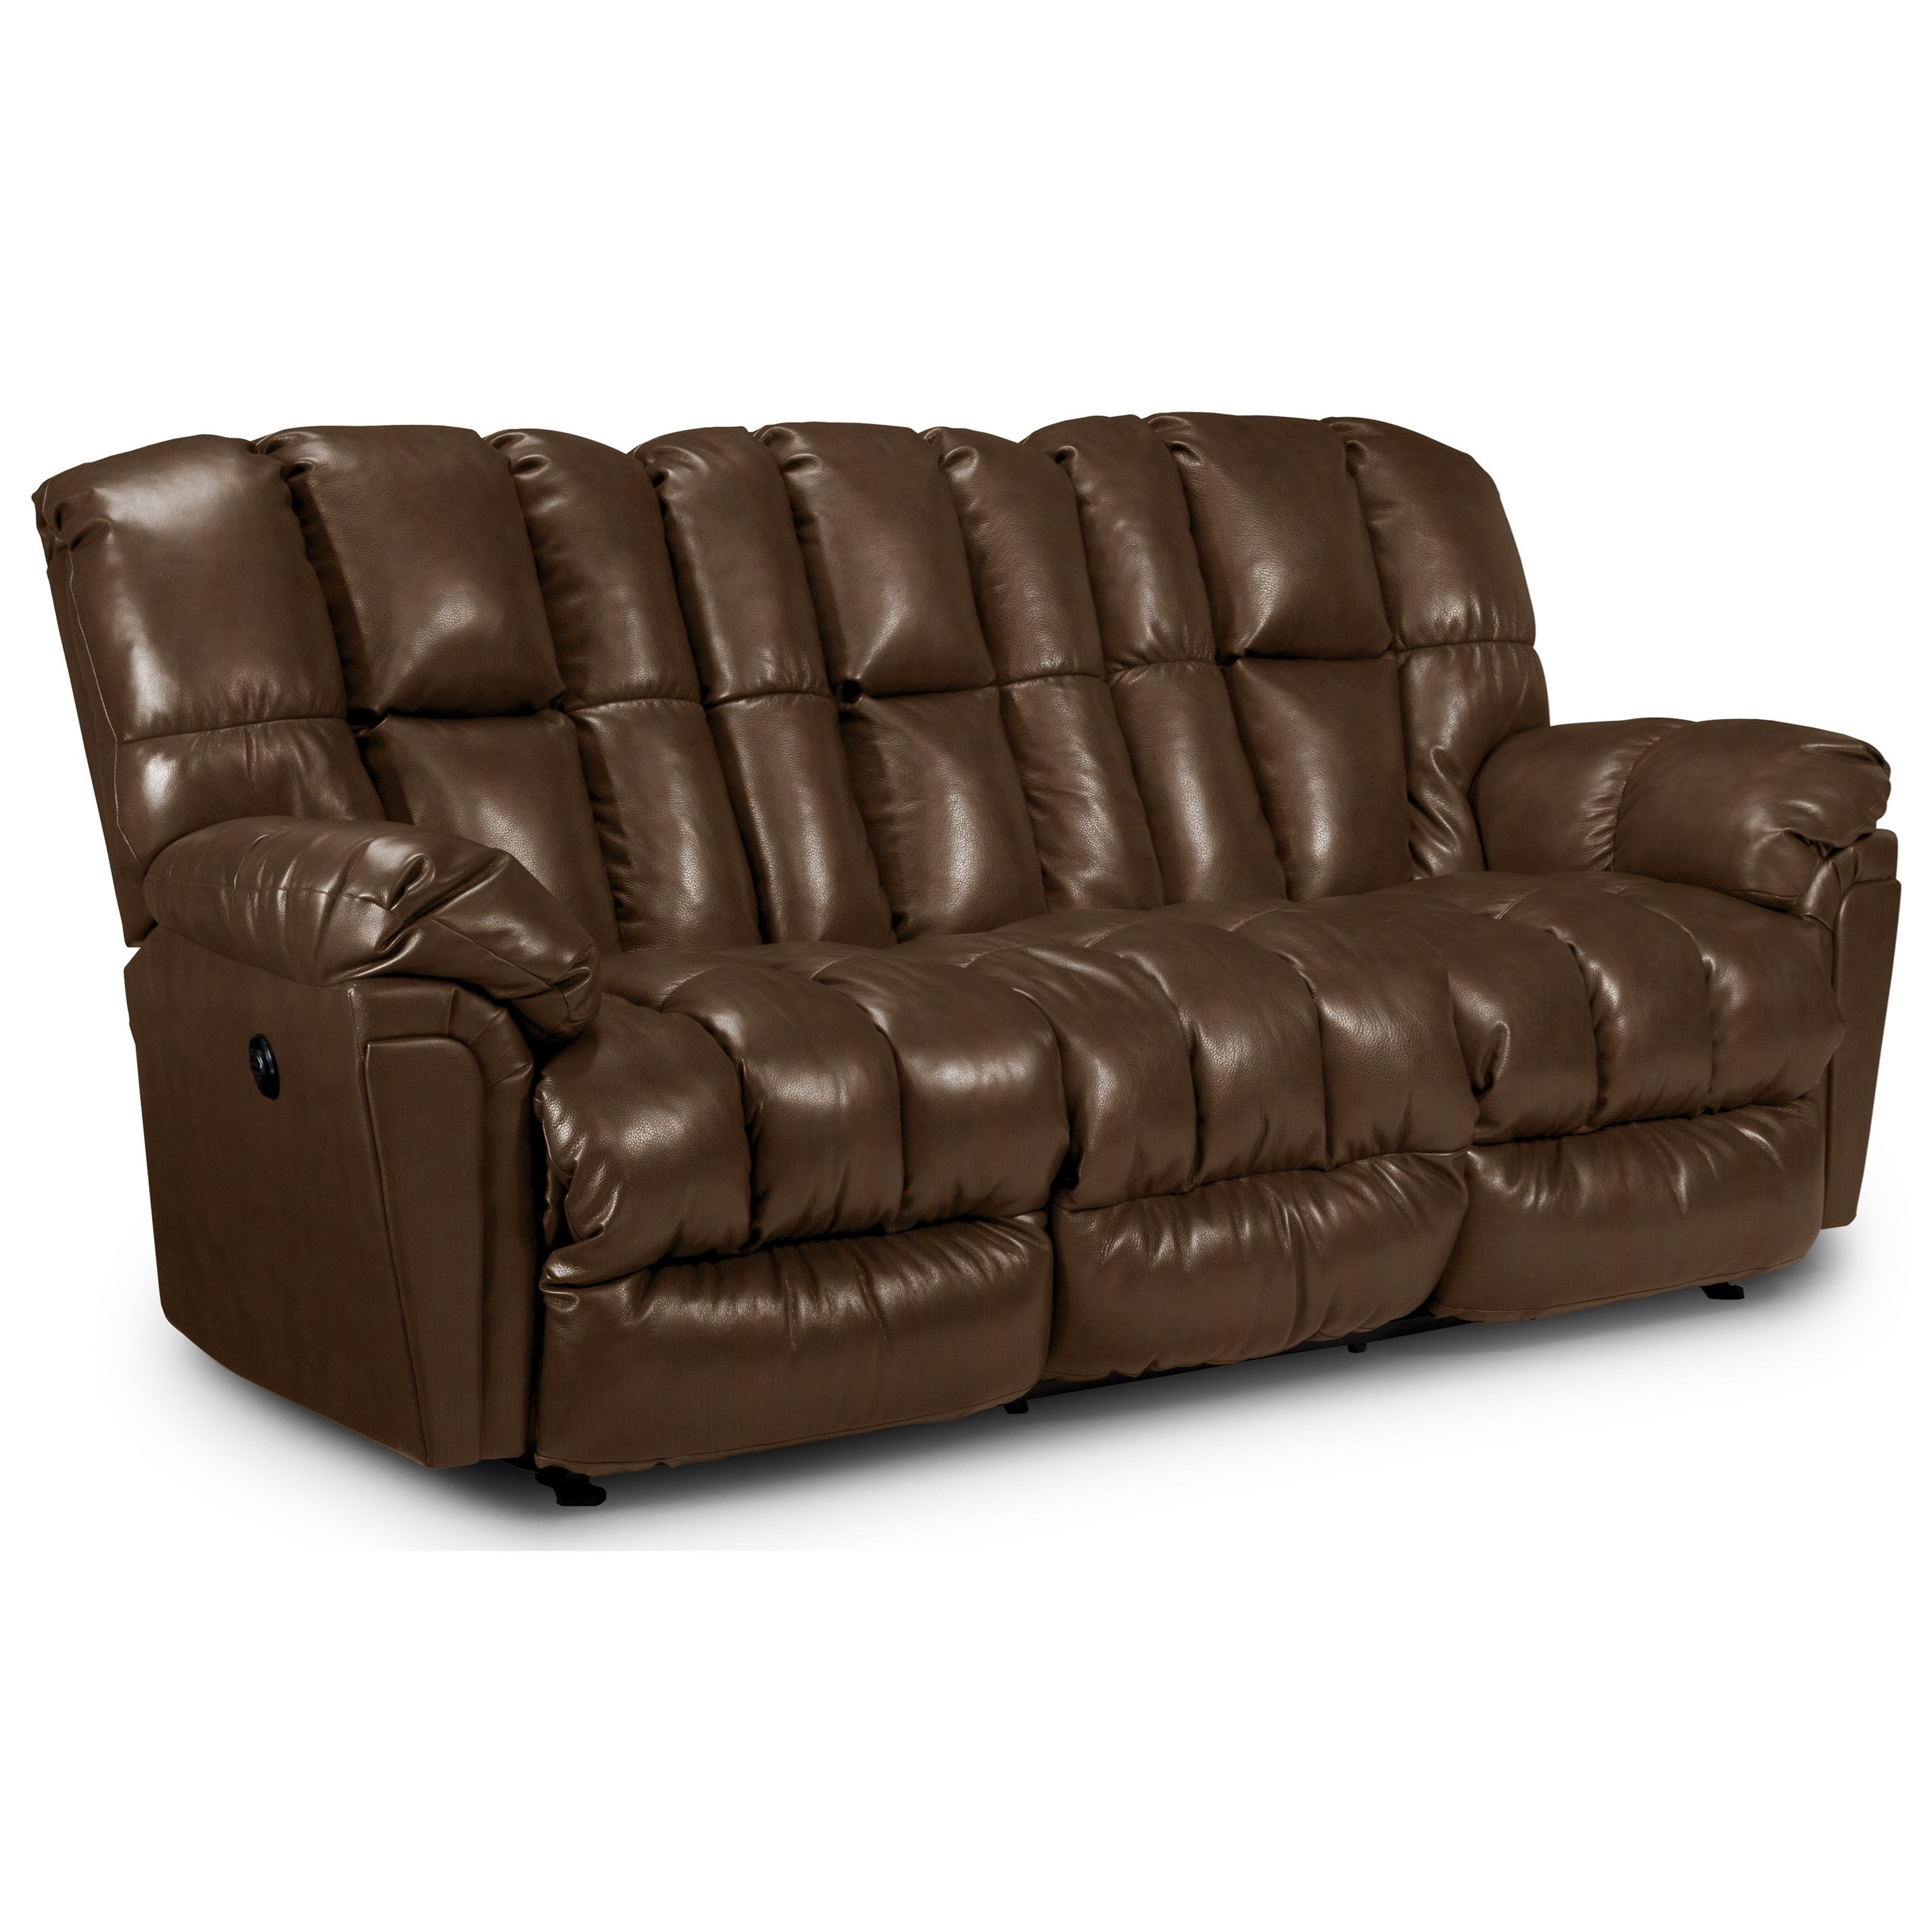 Best Home Furnishings Lucas Power Reclining Sofa - Item Number: -2014665783-25976BBL